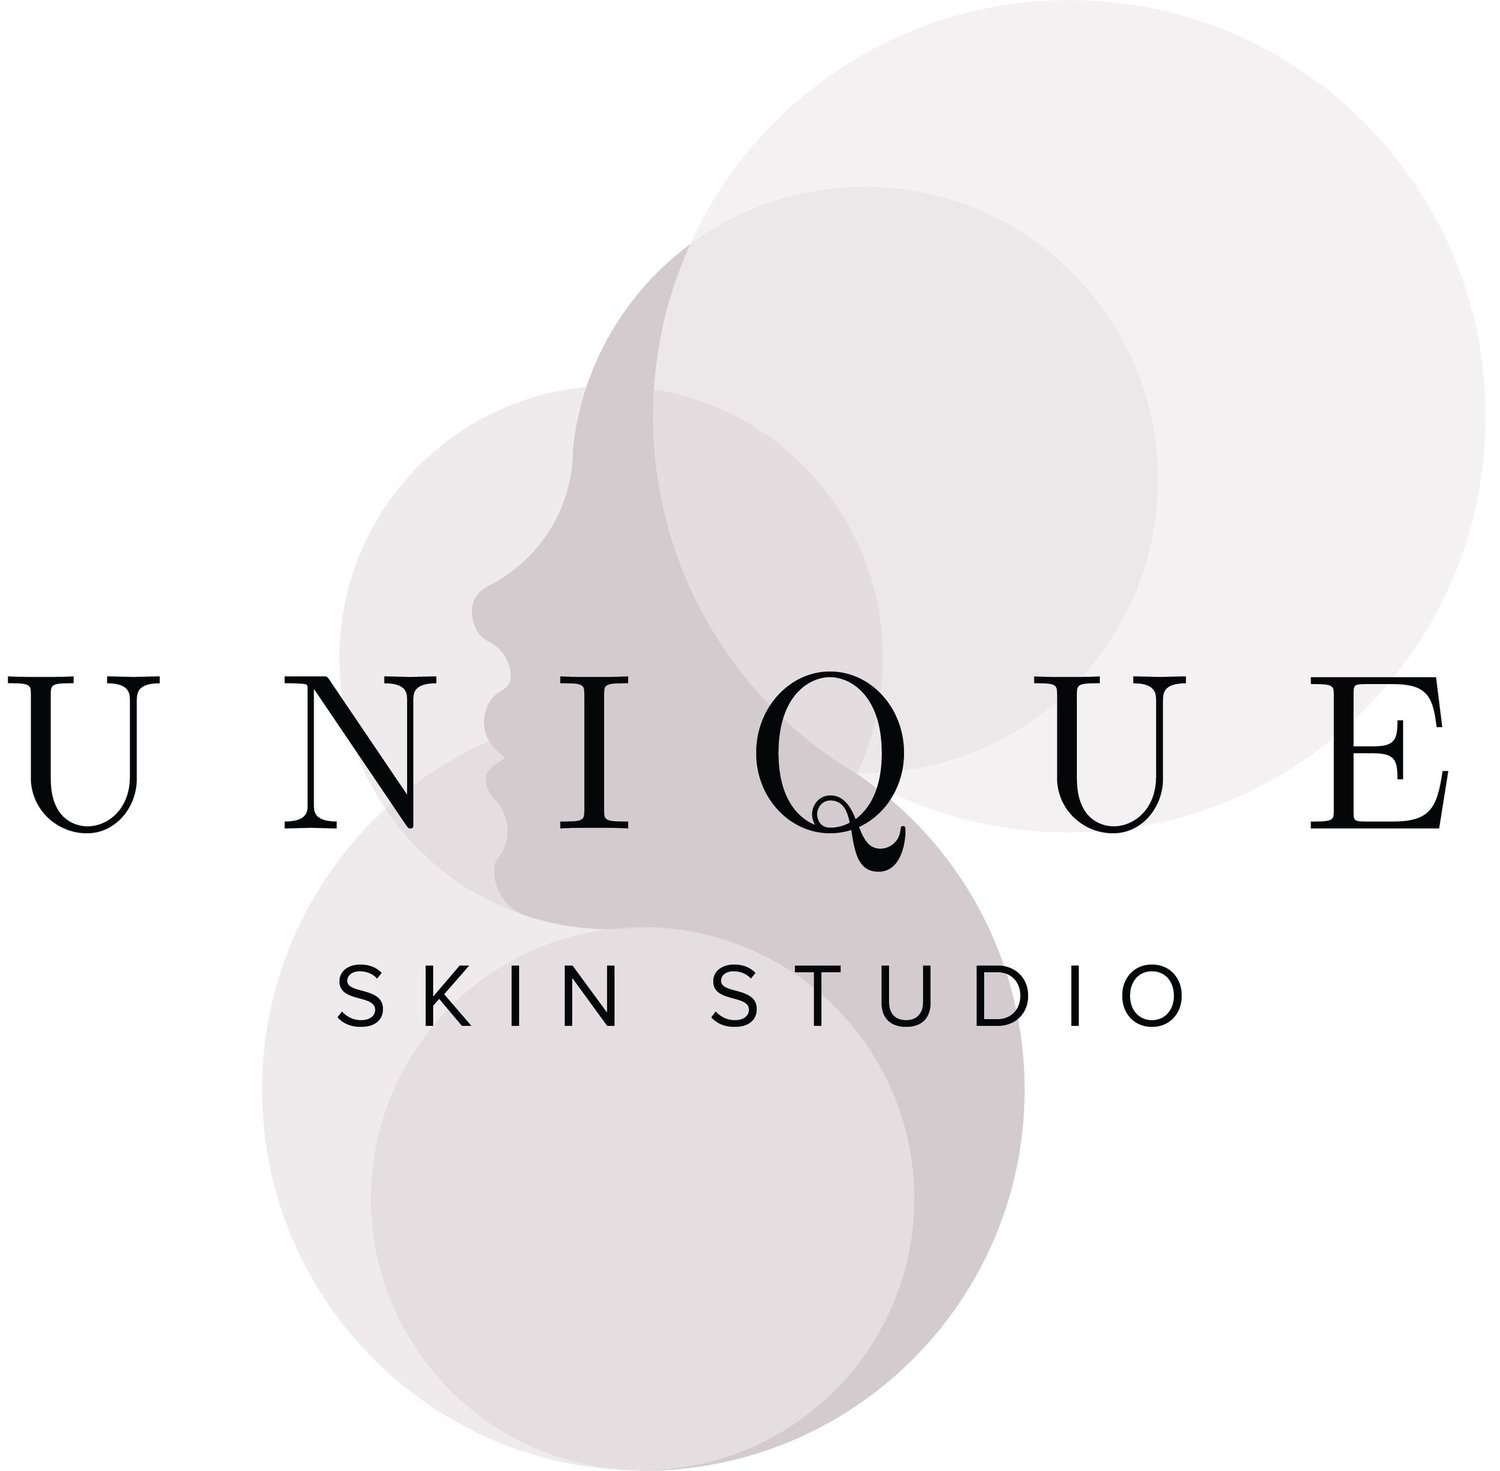 Unique skin studio Logo